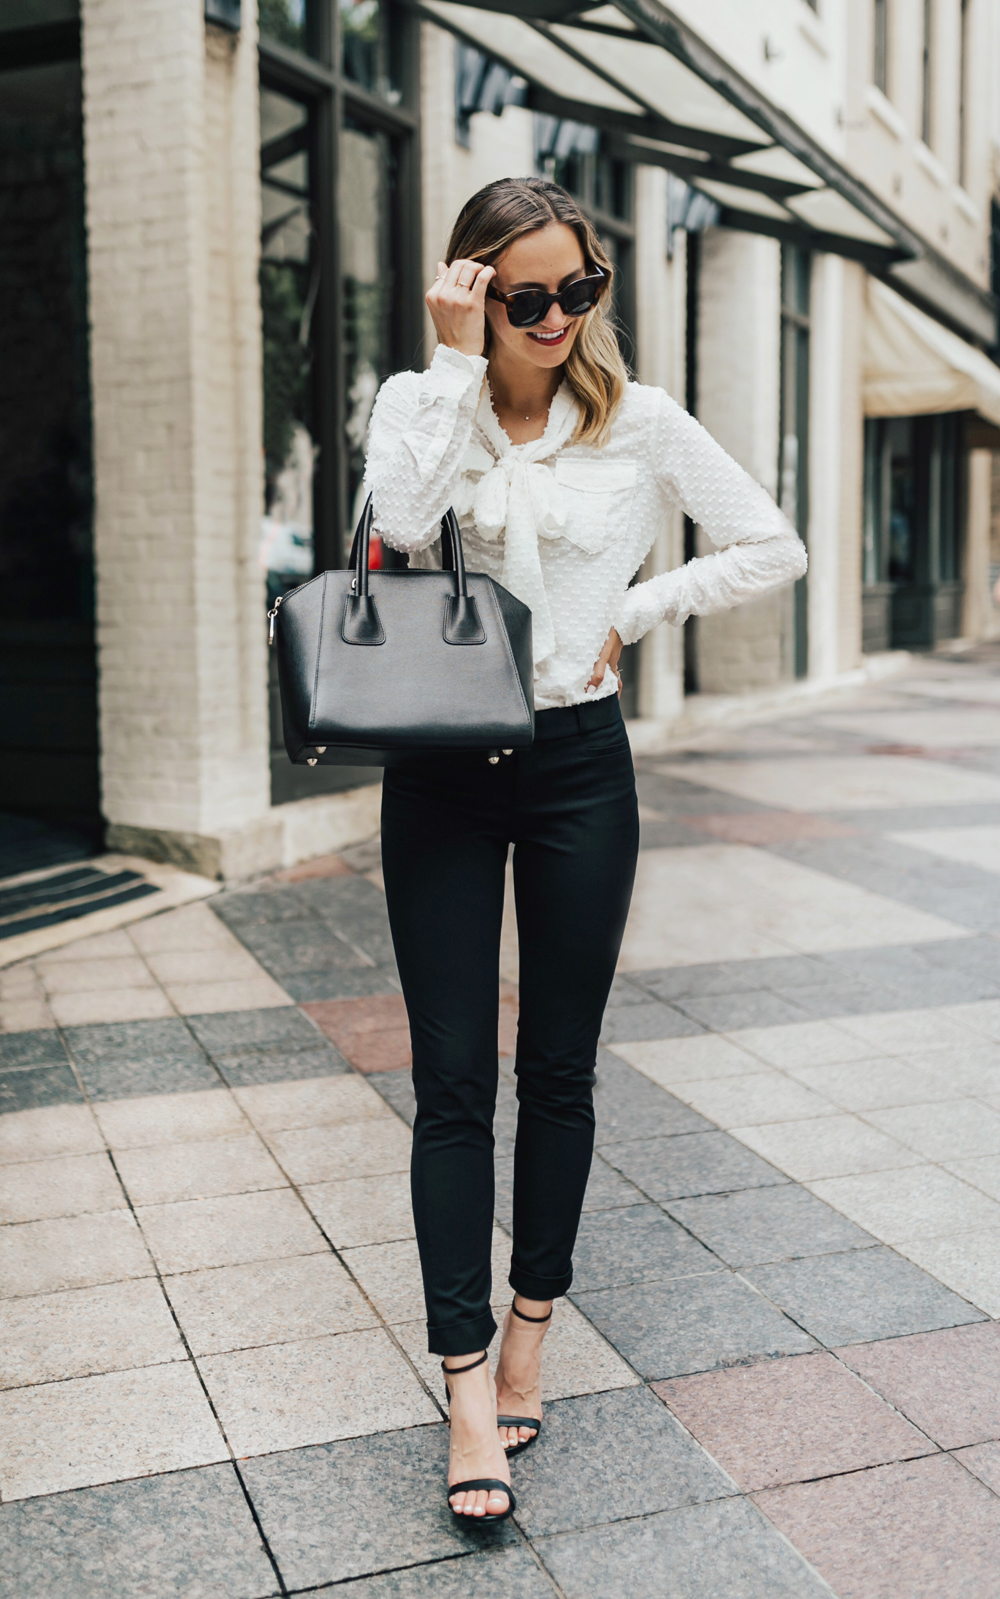 livvyland-blog-olivia-watson-fashion-blogger-banana-republic-sloan-black-dress-pants-pussybow-top-work-wear-outfit-inspiration-classic-chic-6